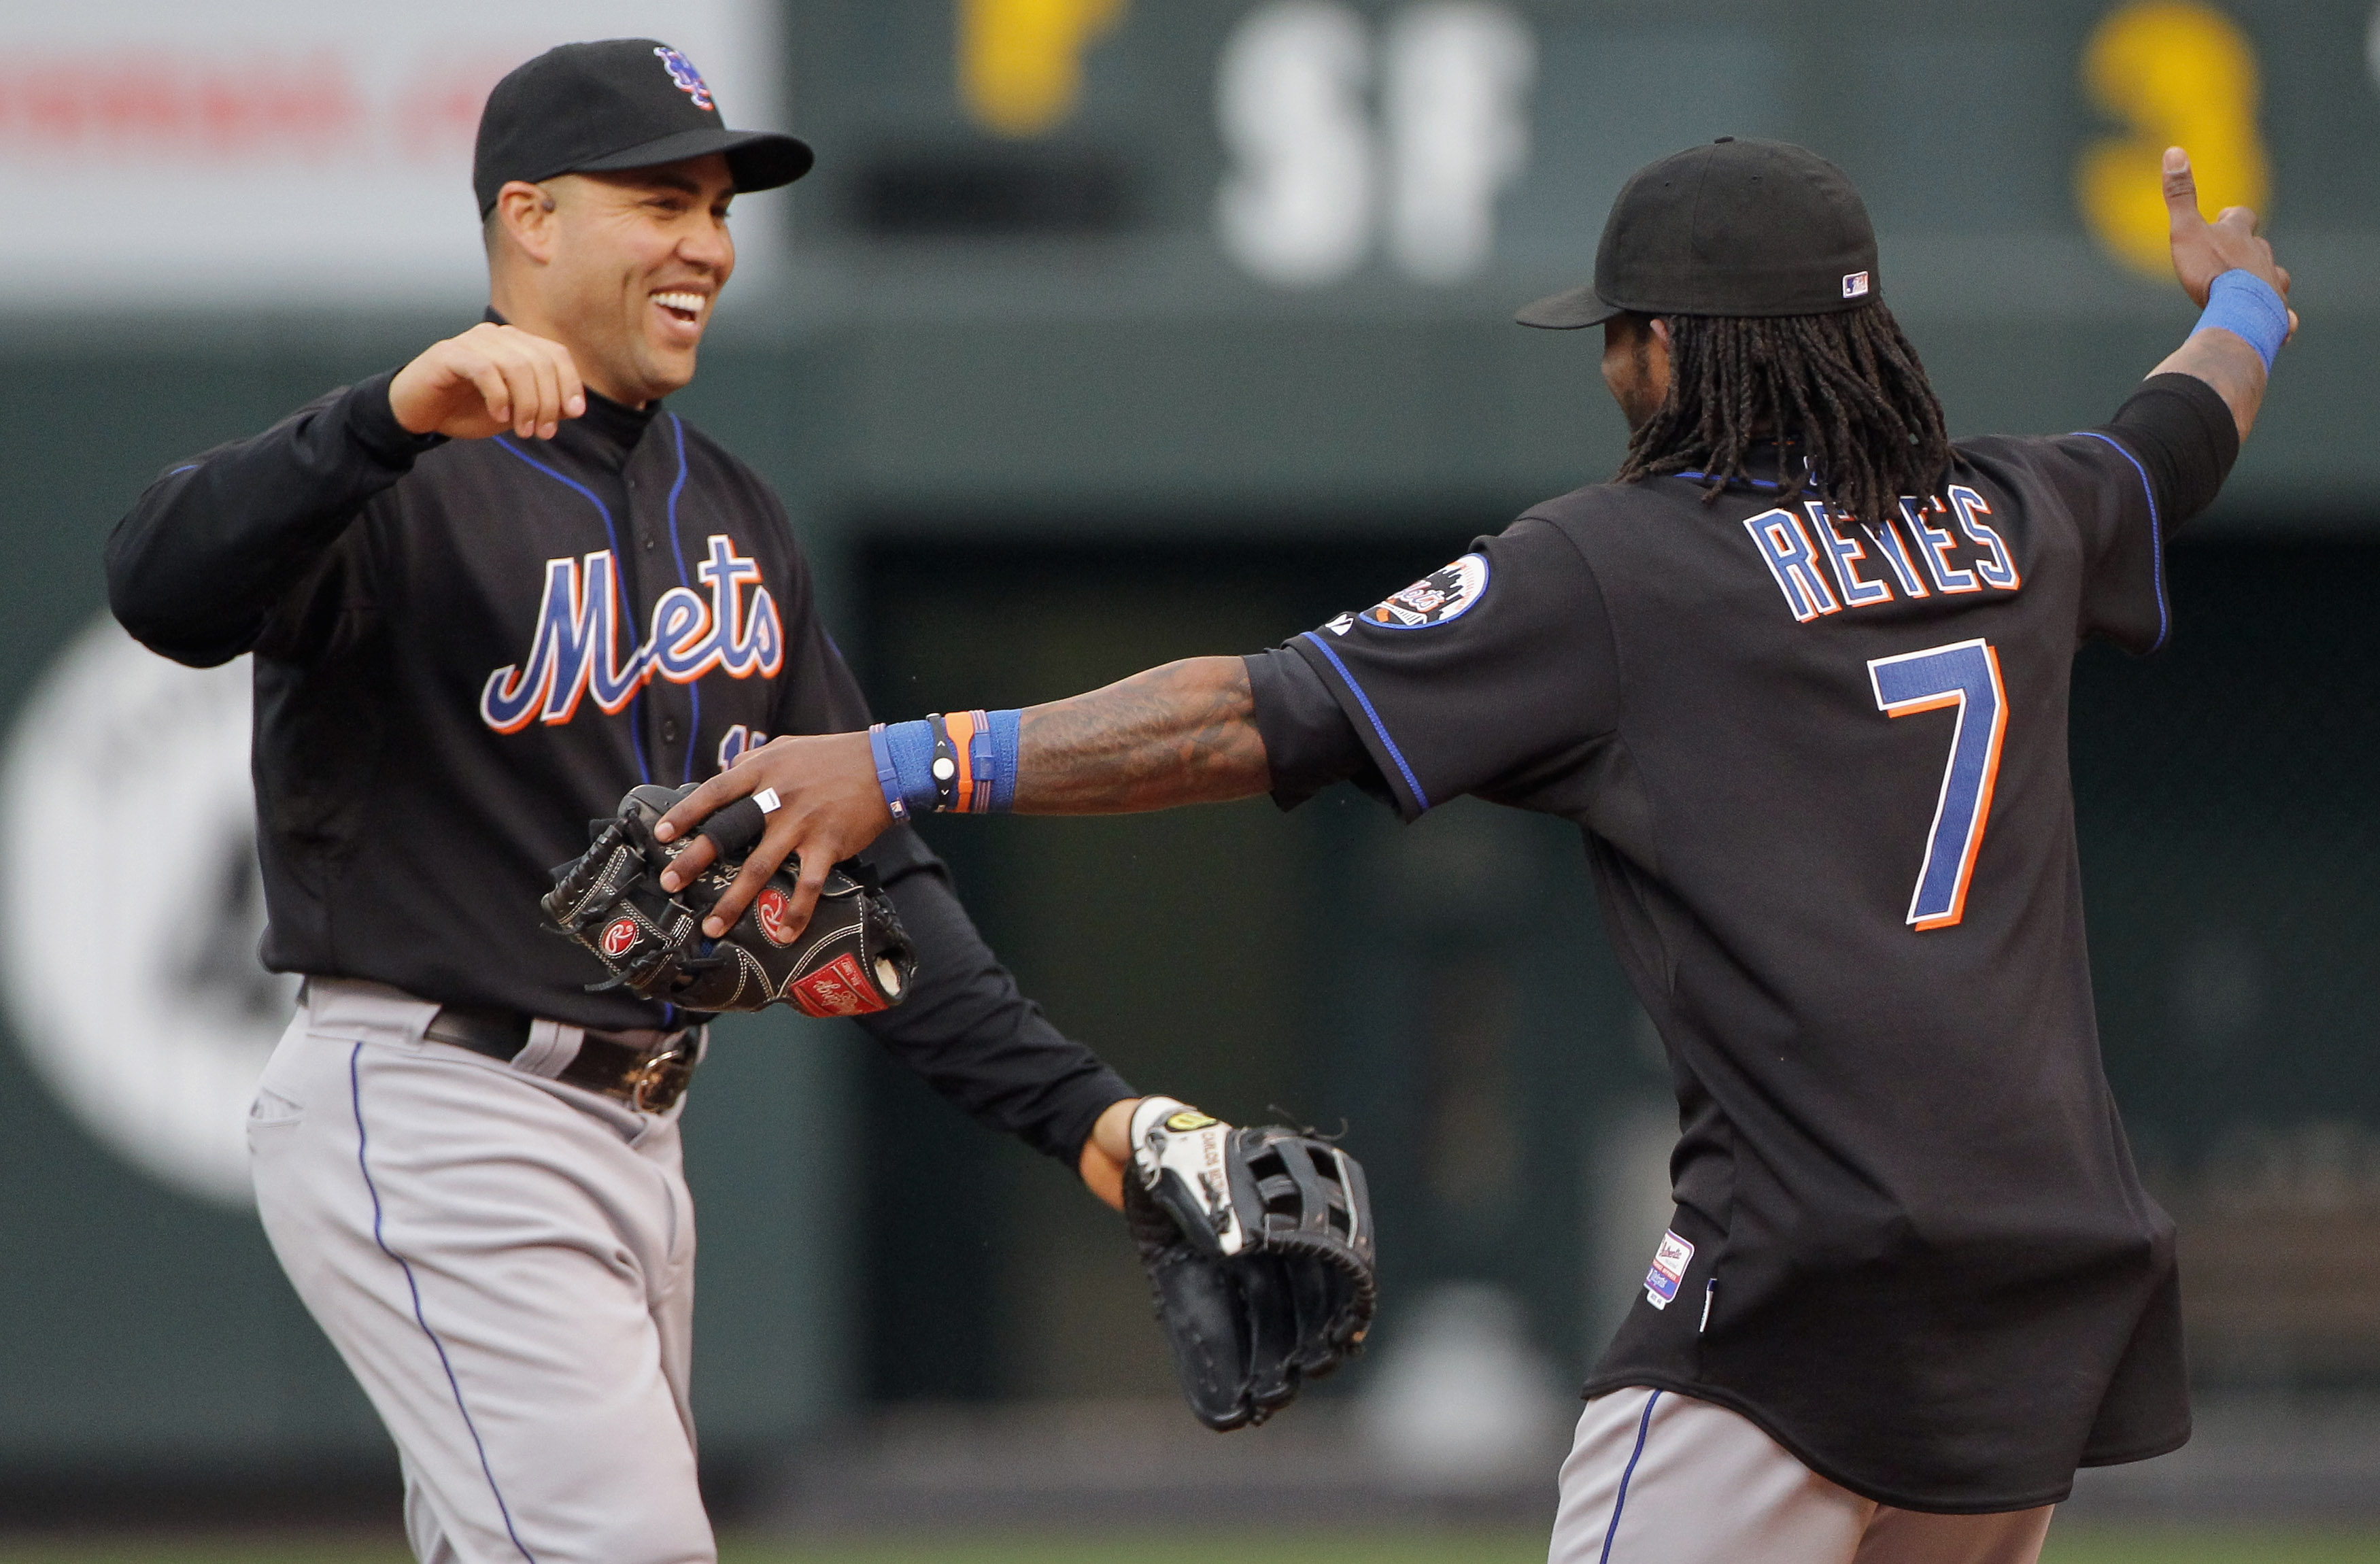 Carlos Beltran and Jose Reyes would both be excellent additions to San Francisco's lineup.